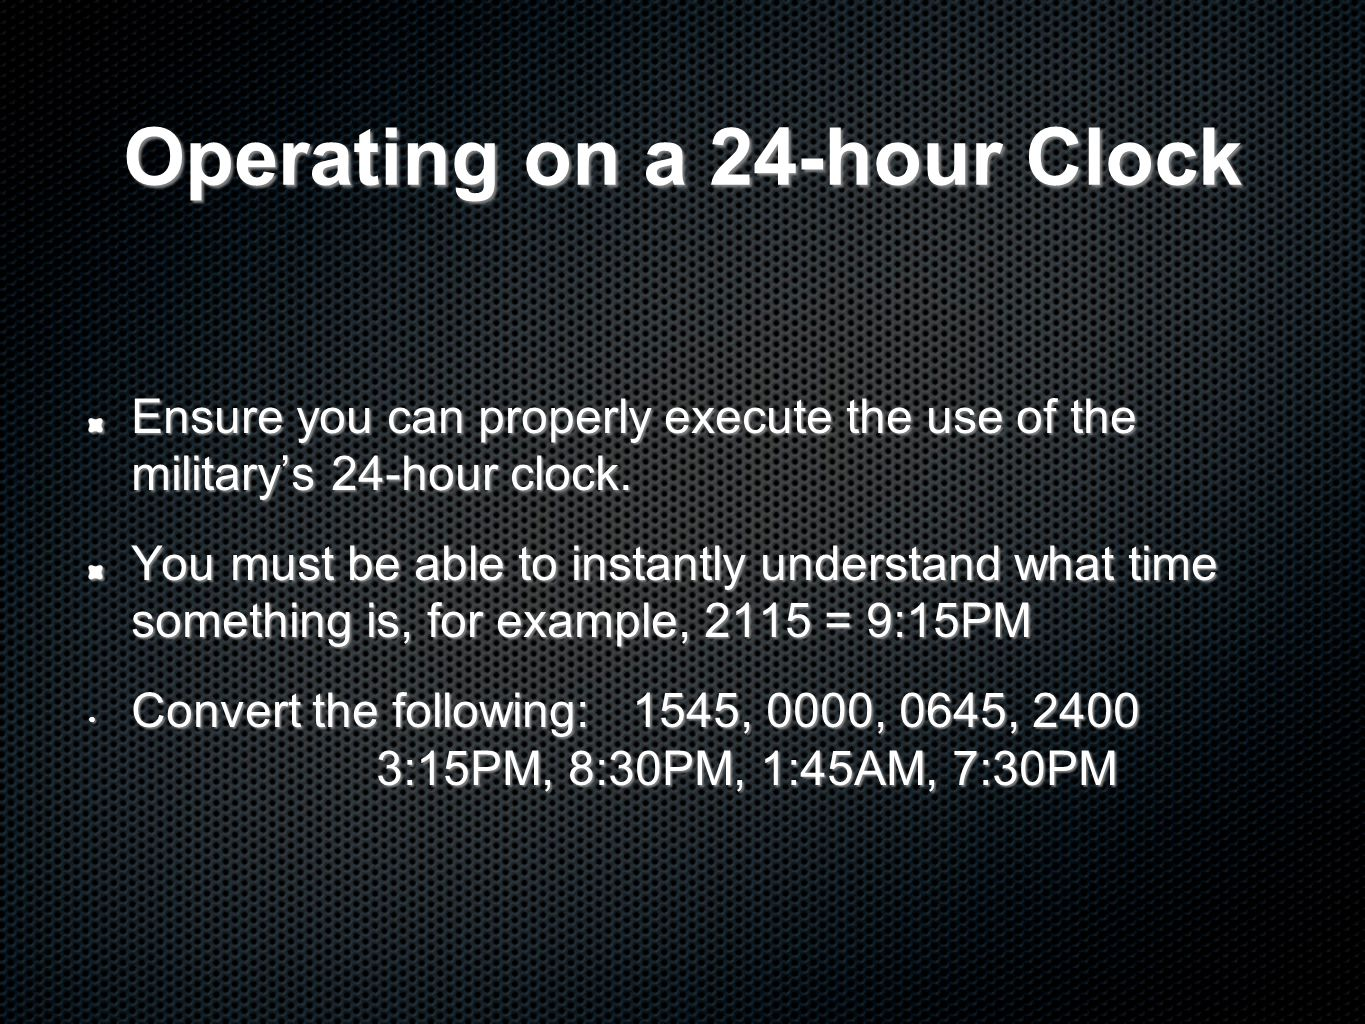 Operating on a 24-hour Clock